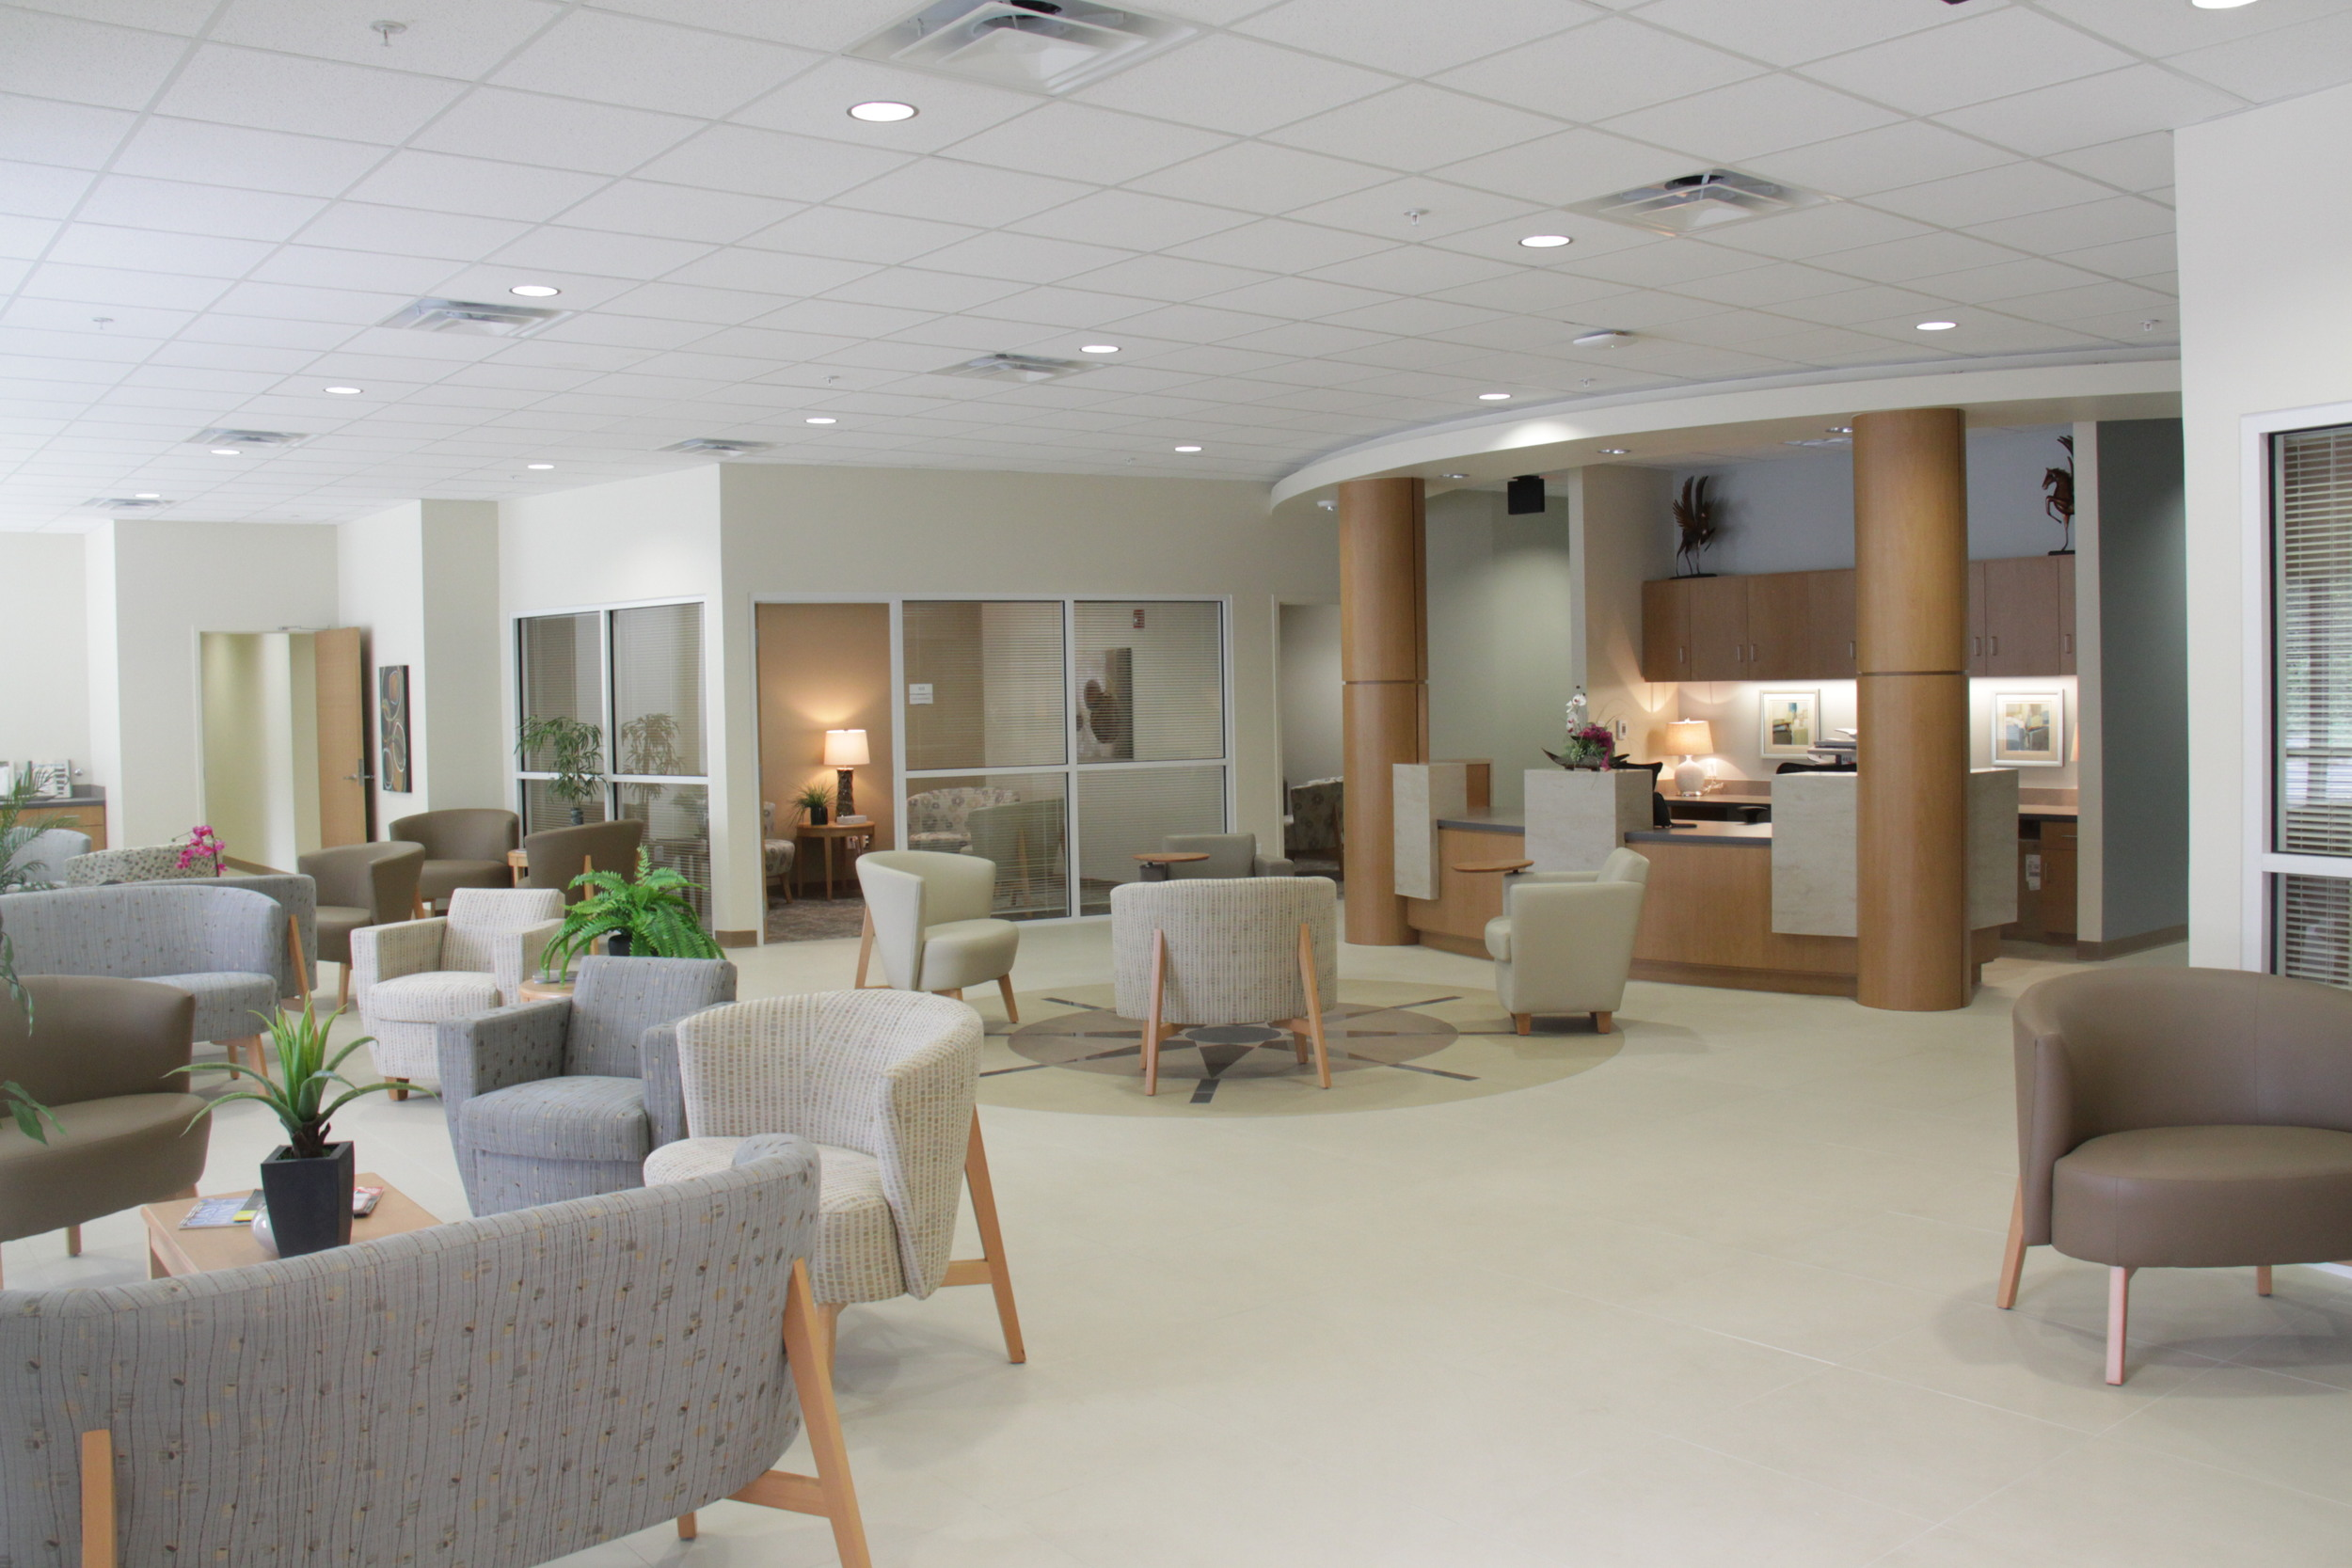 University of Central Florisa - Faculty Practice - Family Support Area